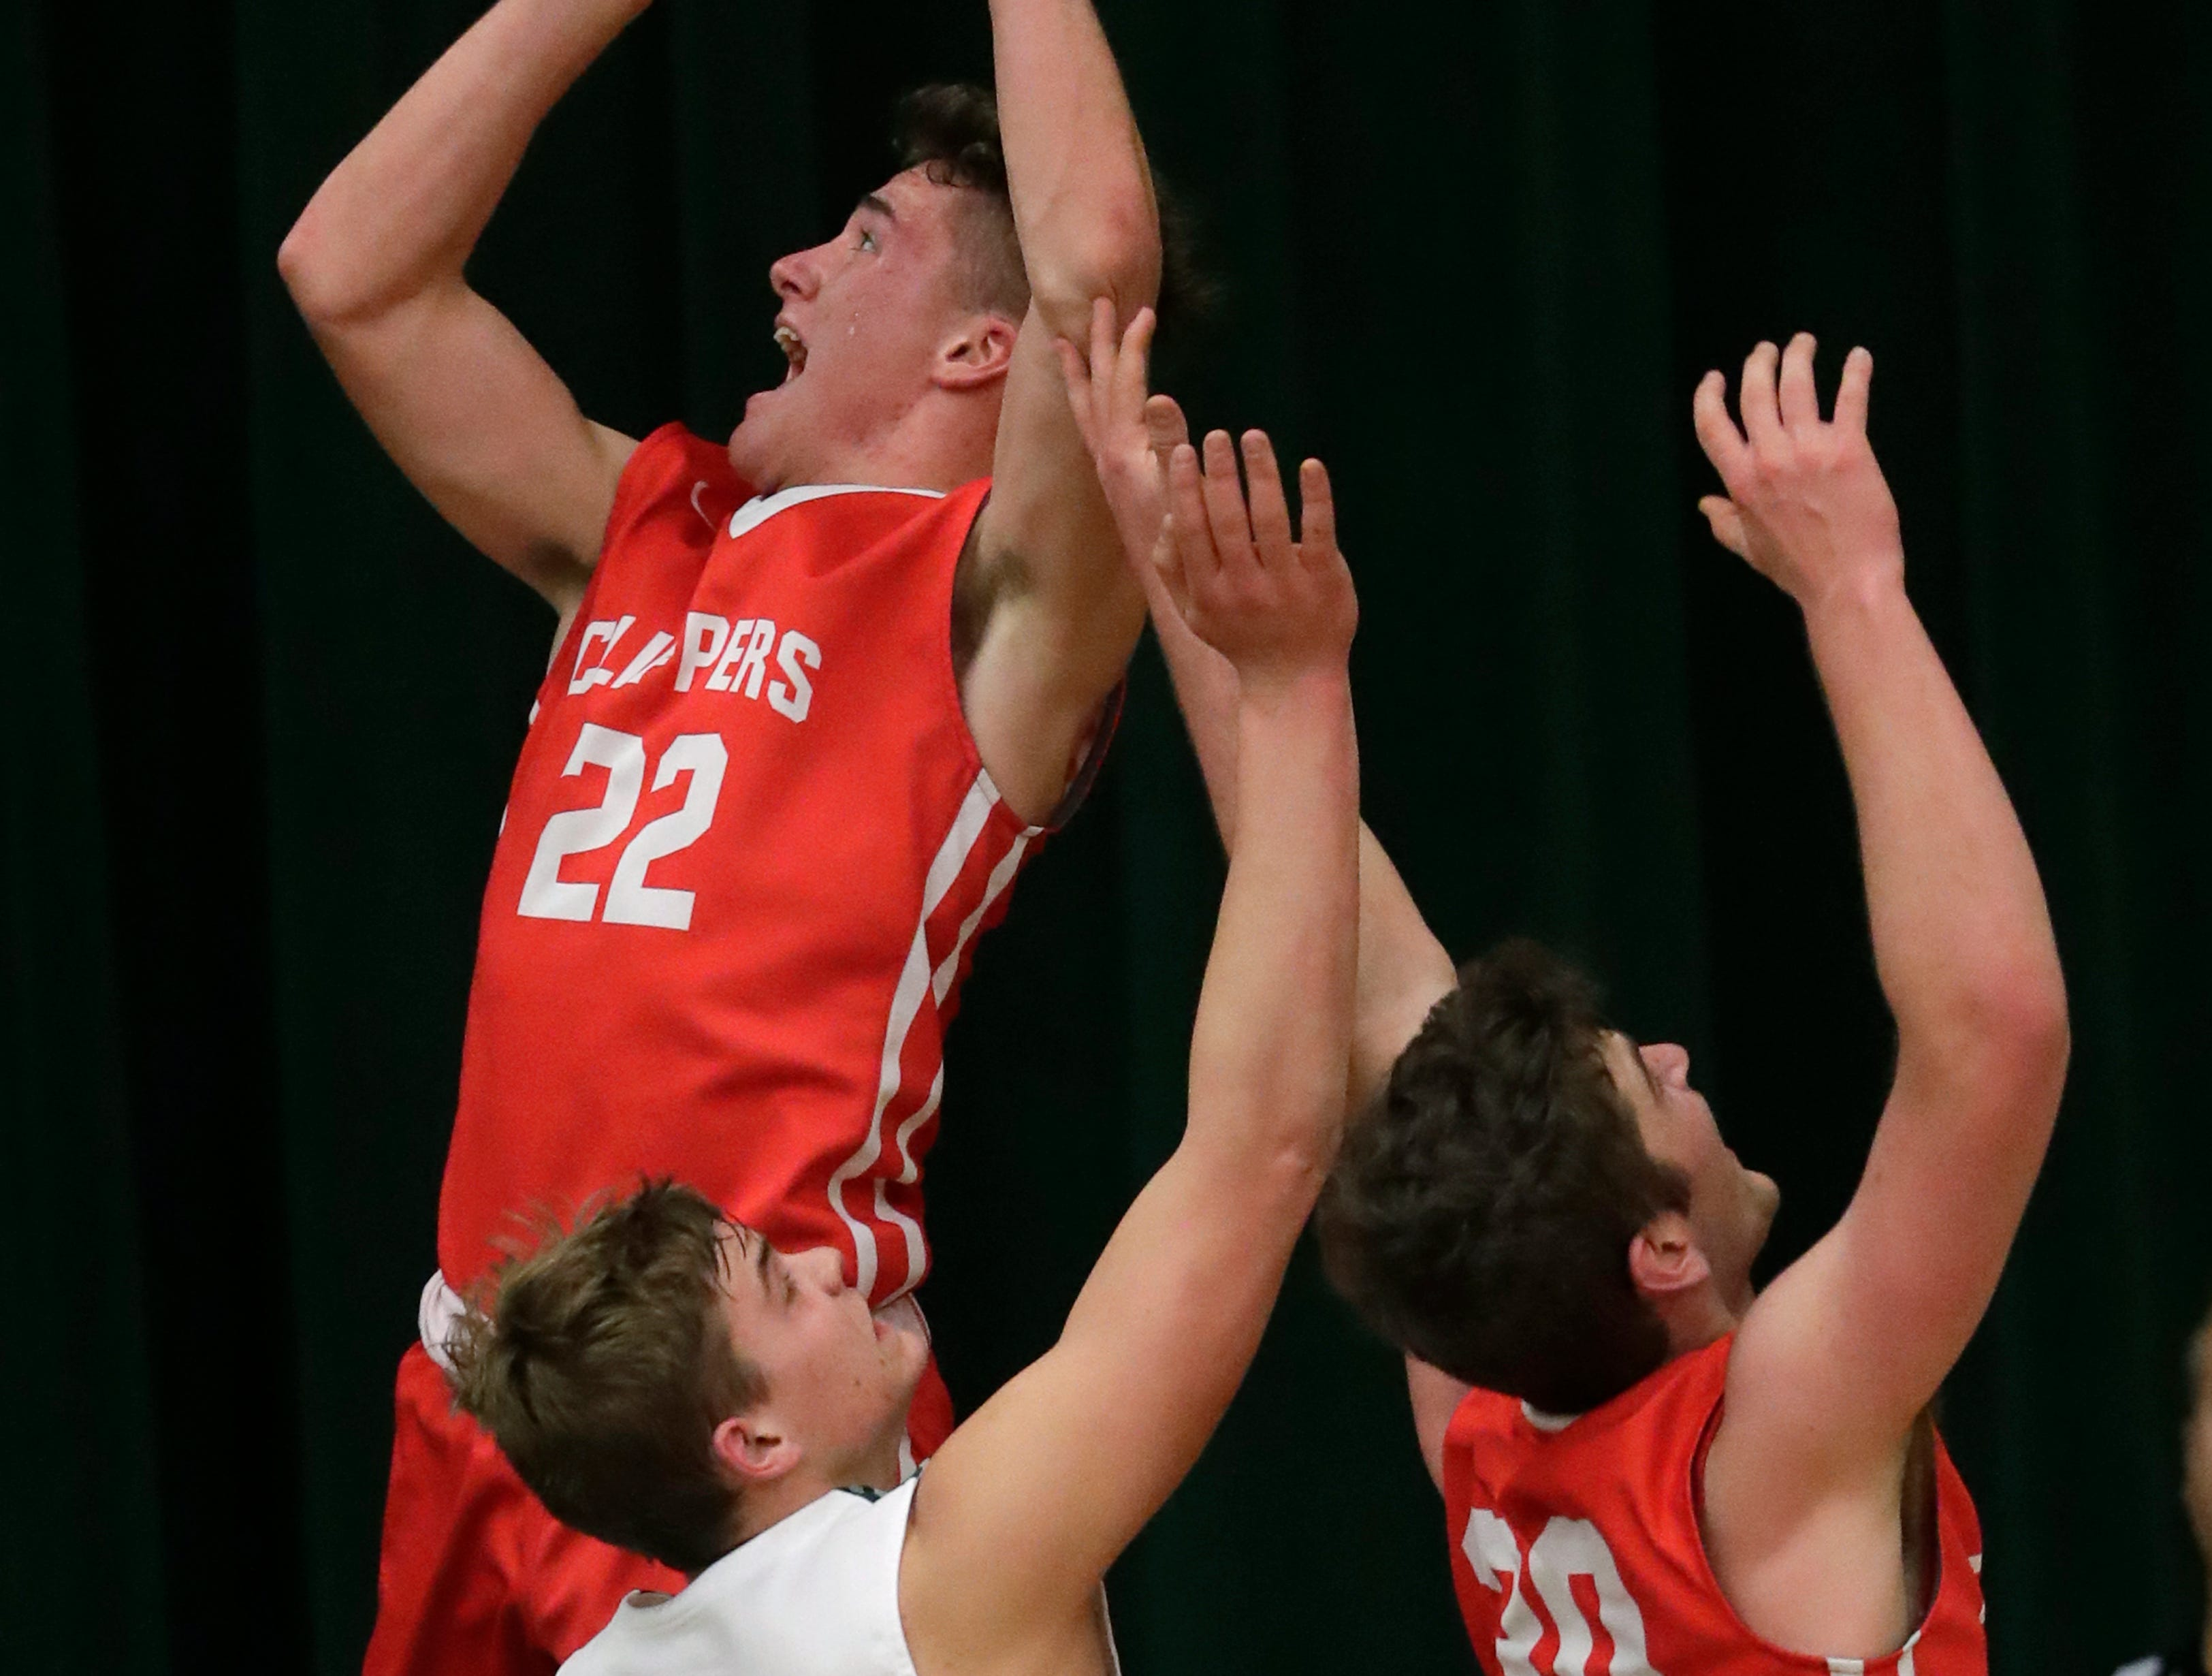 Sturgeon Bay High School's Jake Schneider (22) puts up a shot against Shiocton High School's Deven Bedor (23) as Trent Ehlers (30) moves in during their boys basketball game Thursday, December 27, 2018, in Shiocton, Wis. 